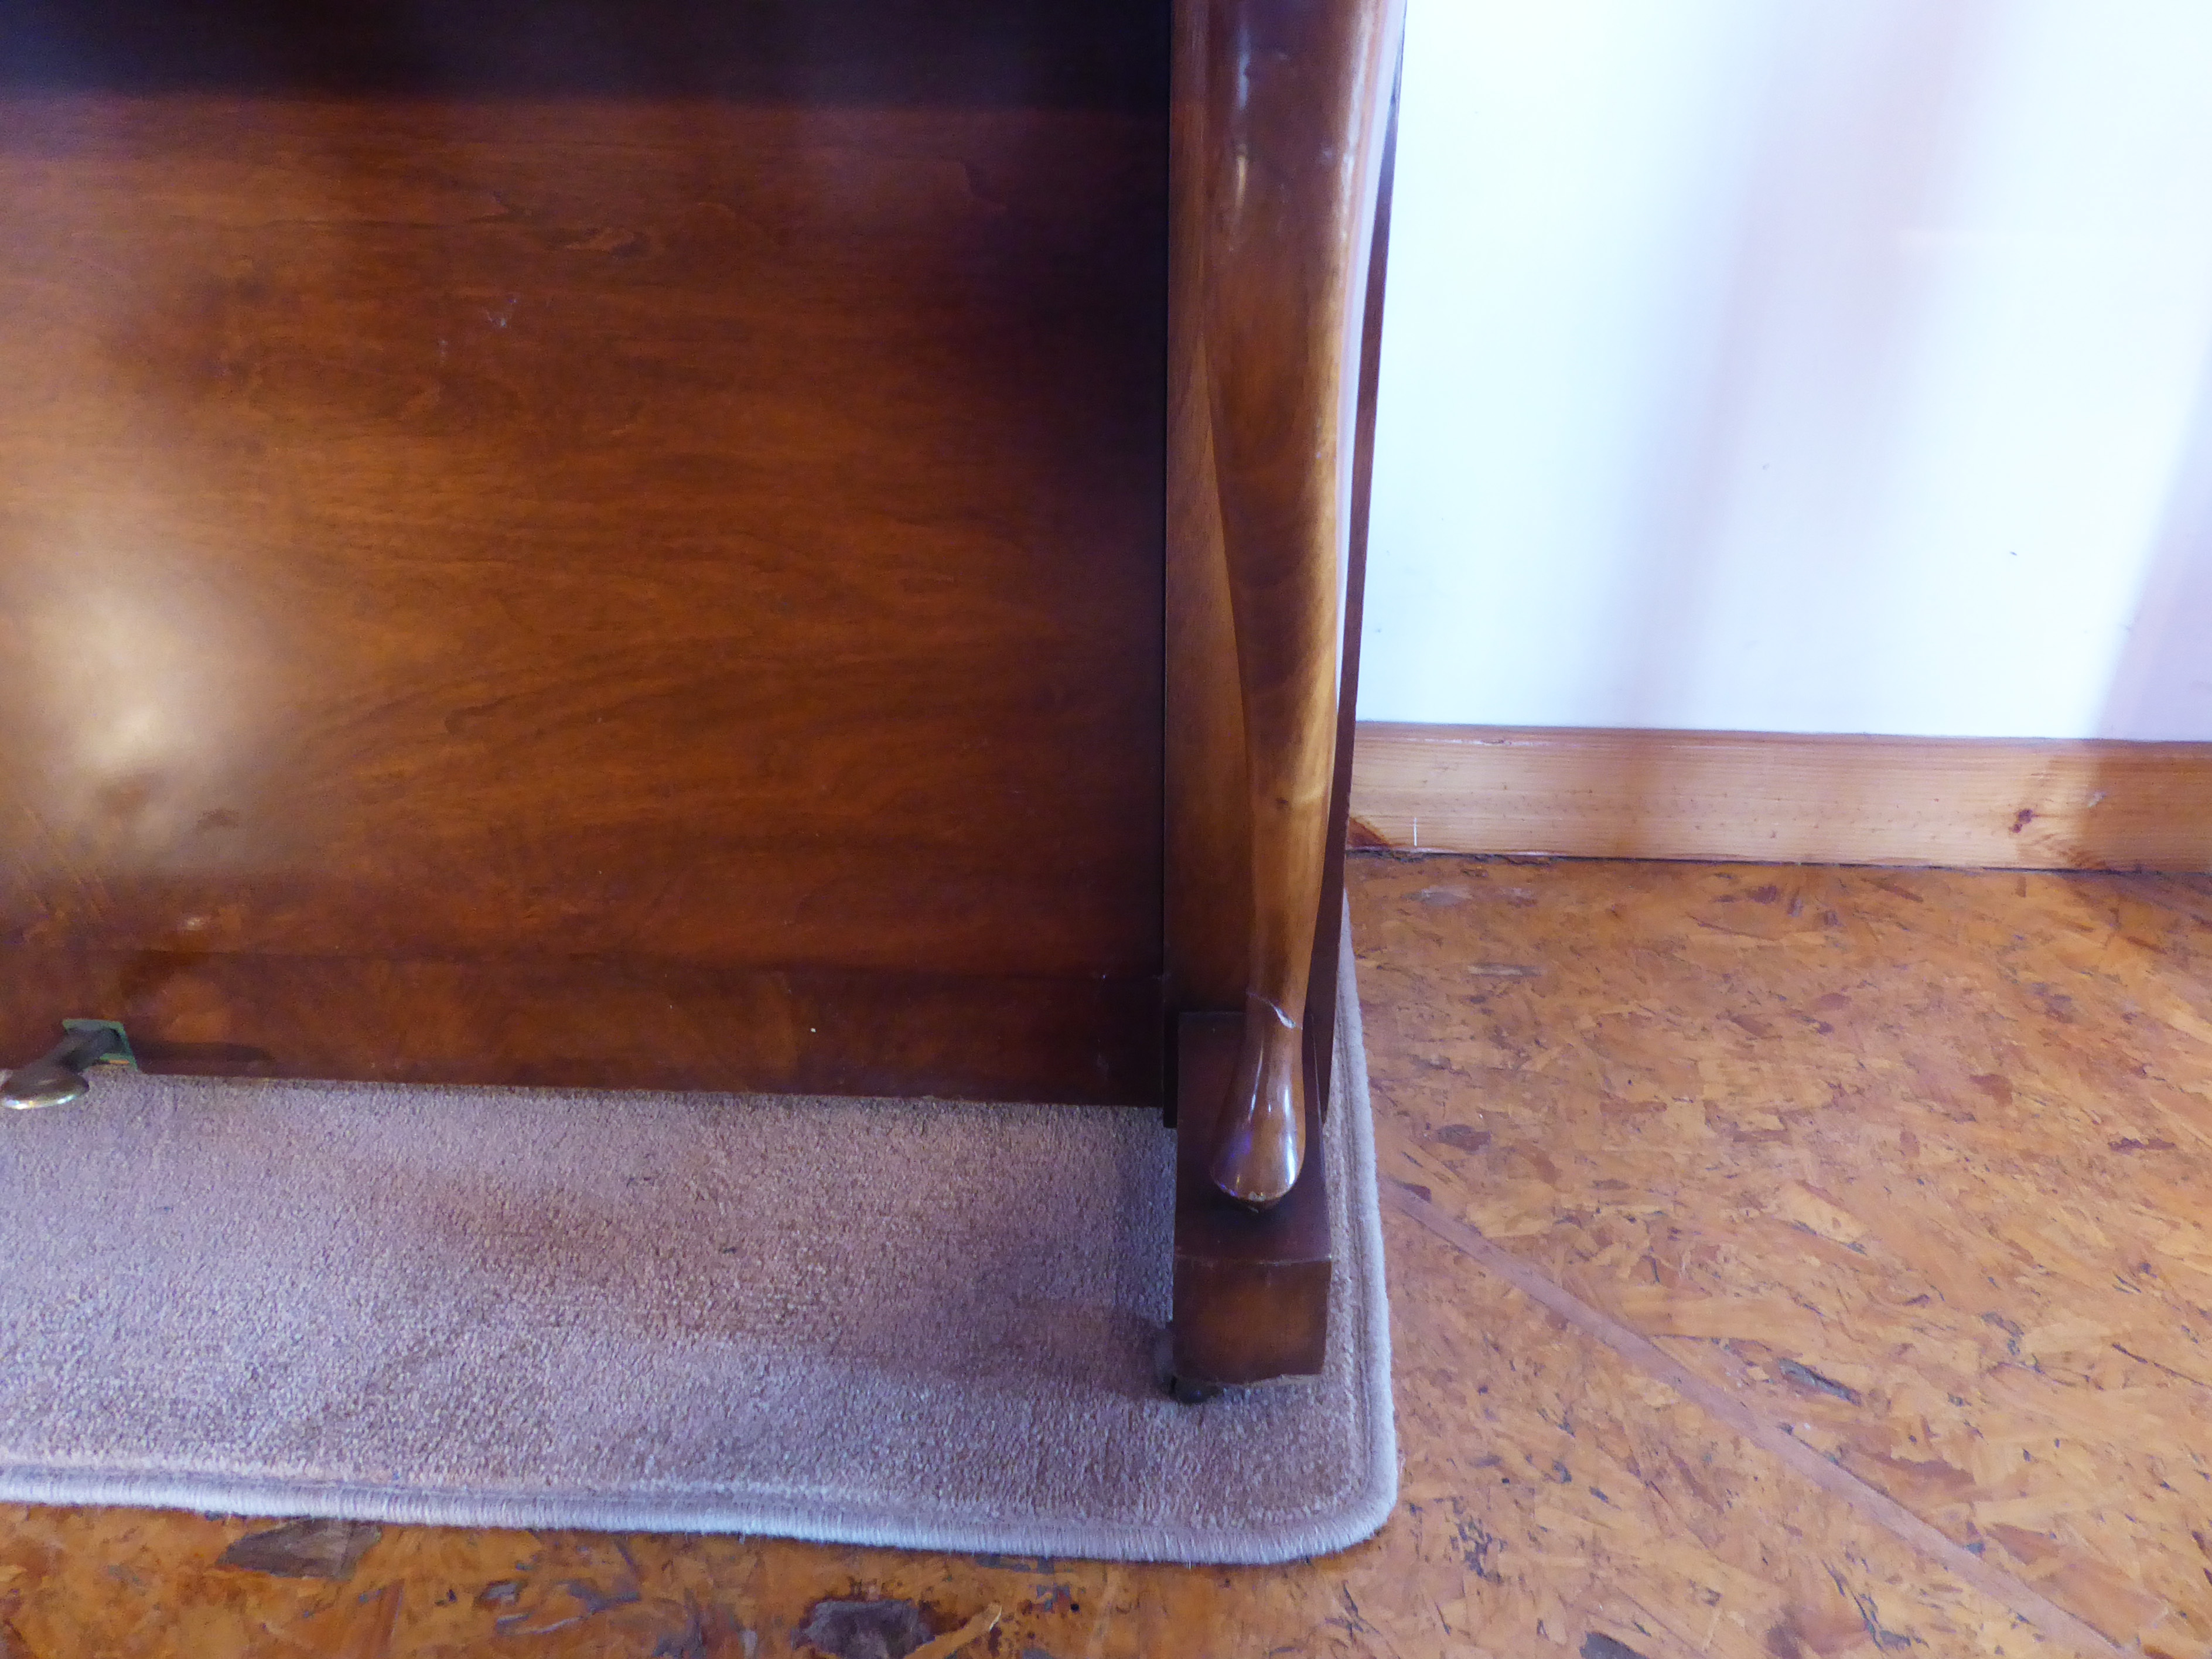 Upright Piano Carpet For Protection From Underfloor